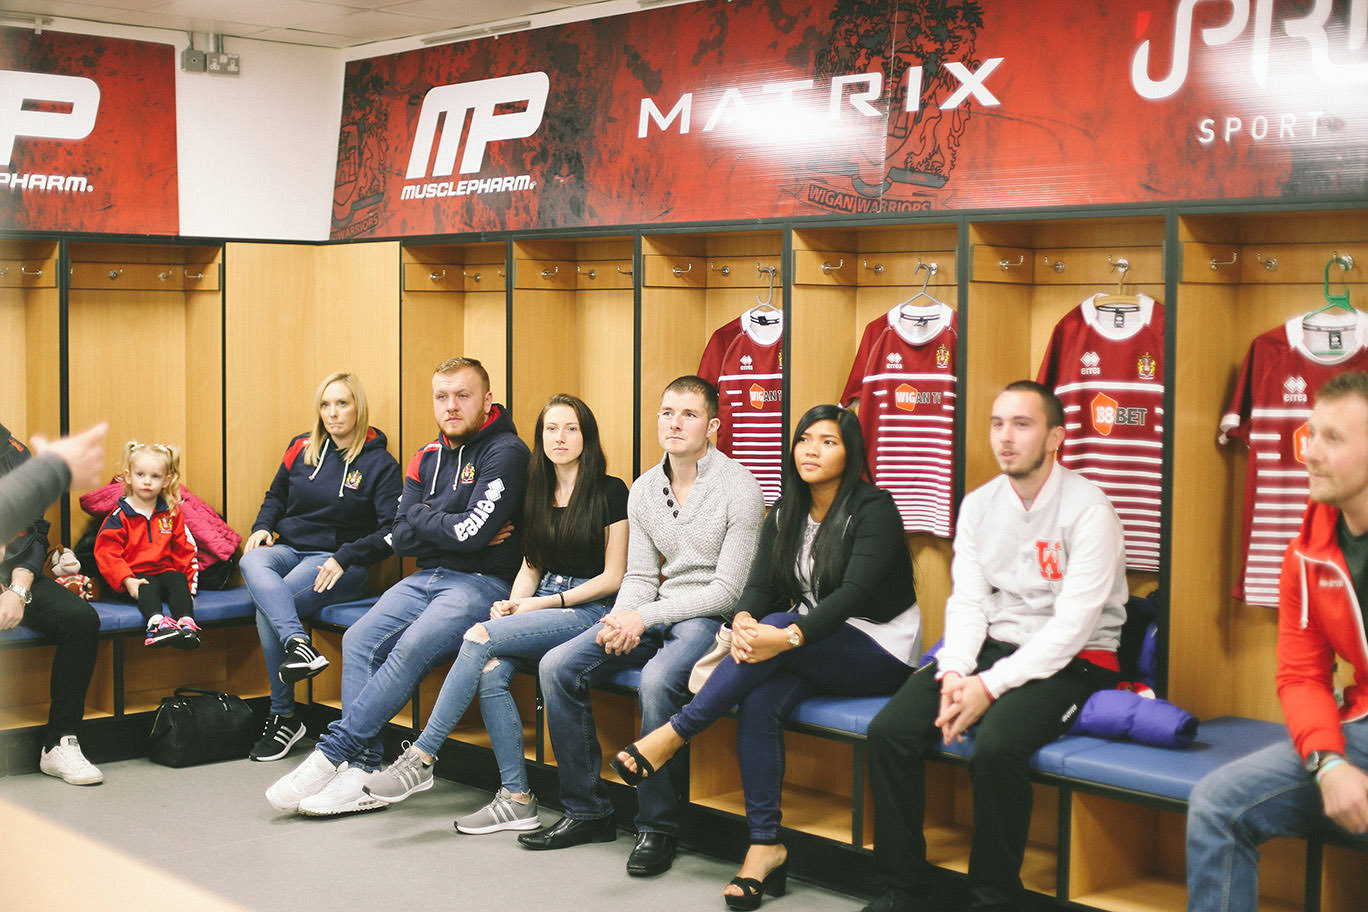 Fans in dressing room at Wigan Warriors for photo shoot